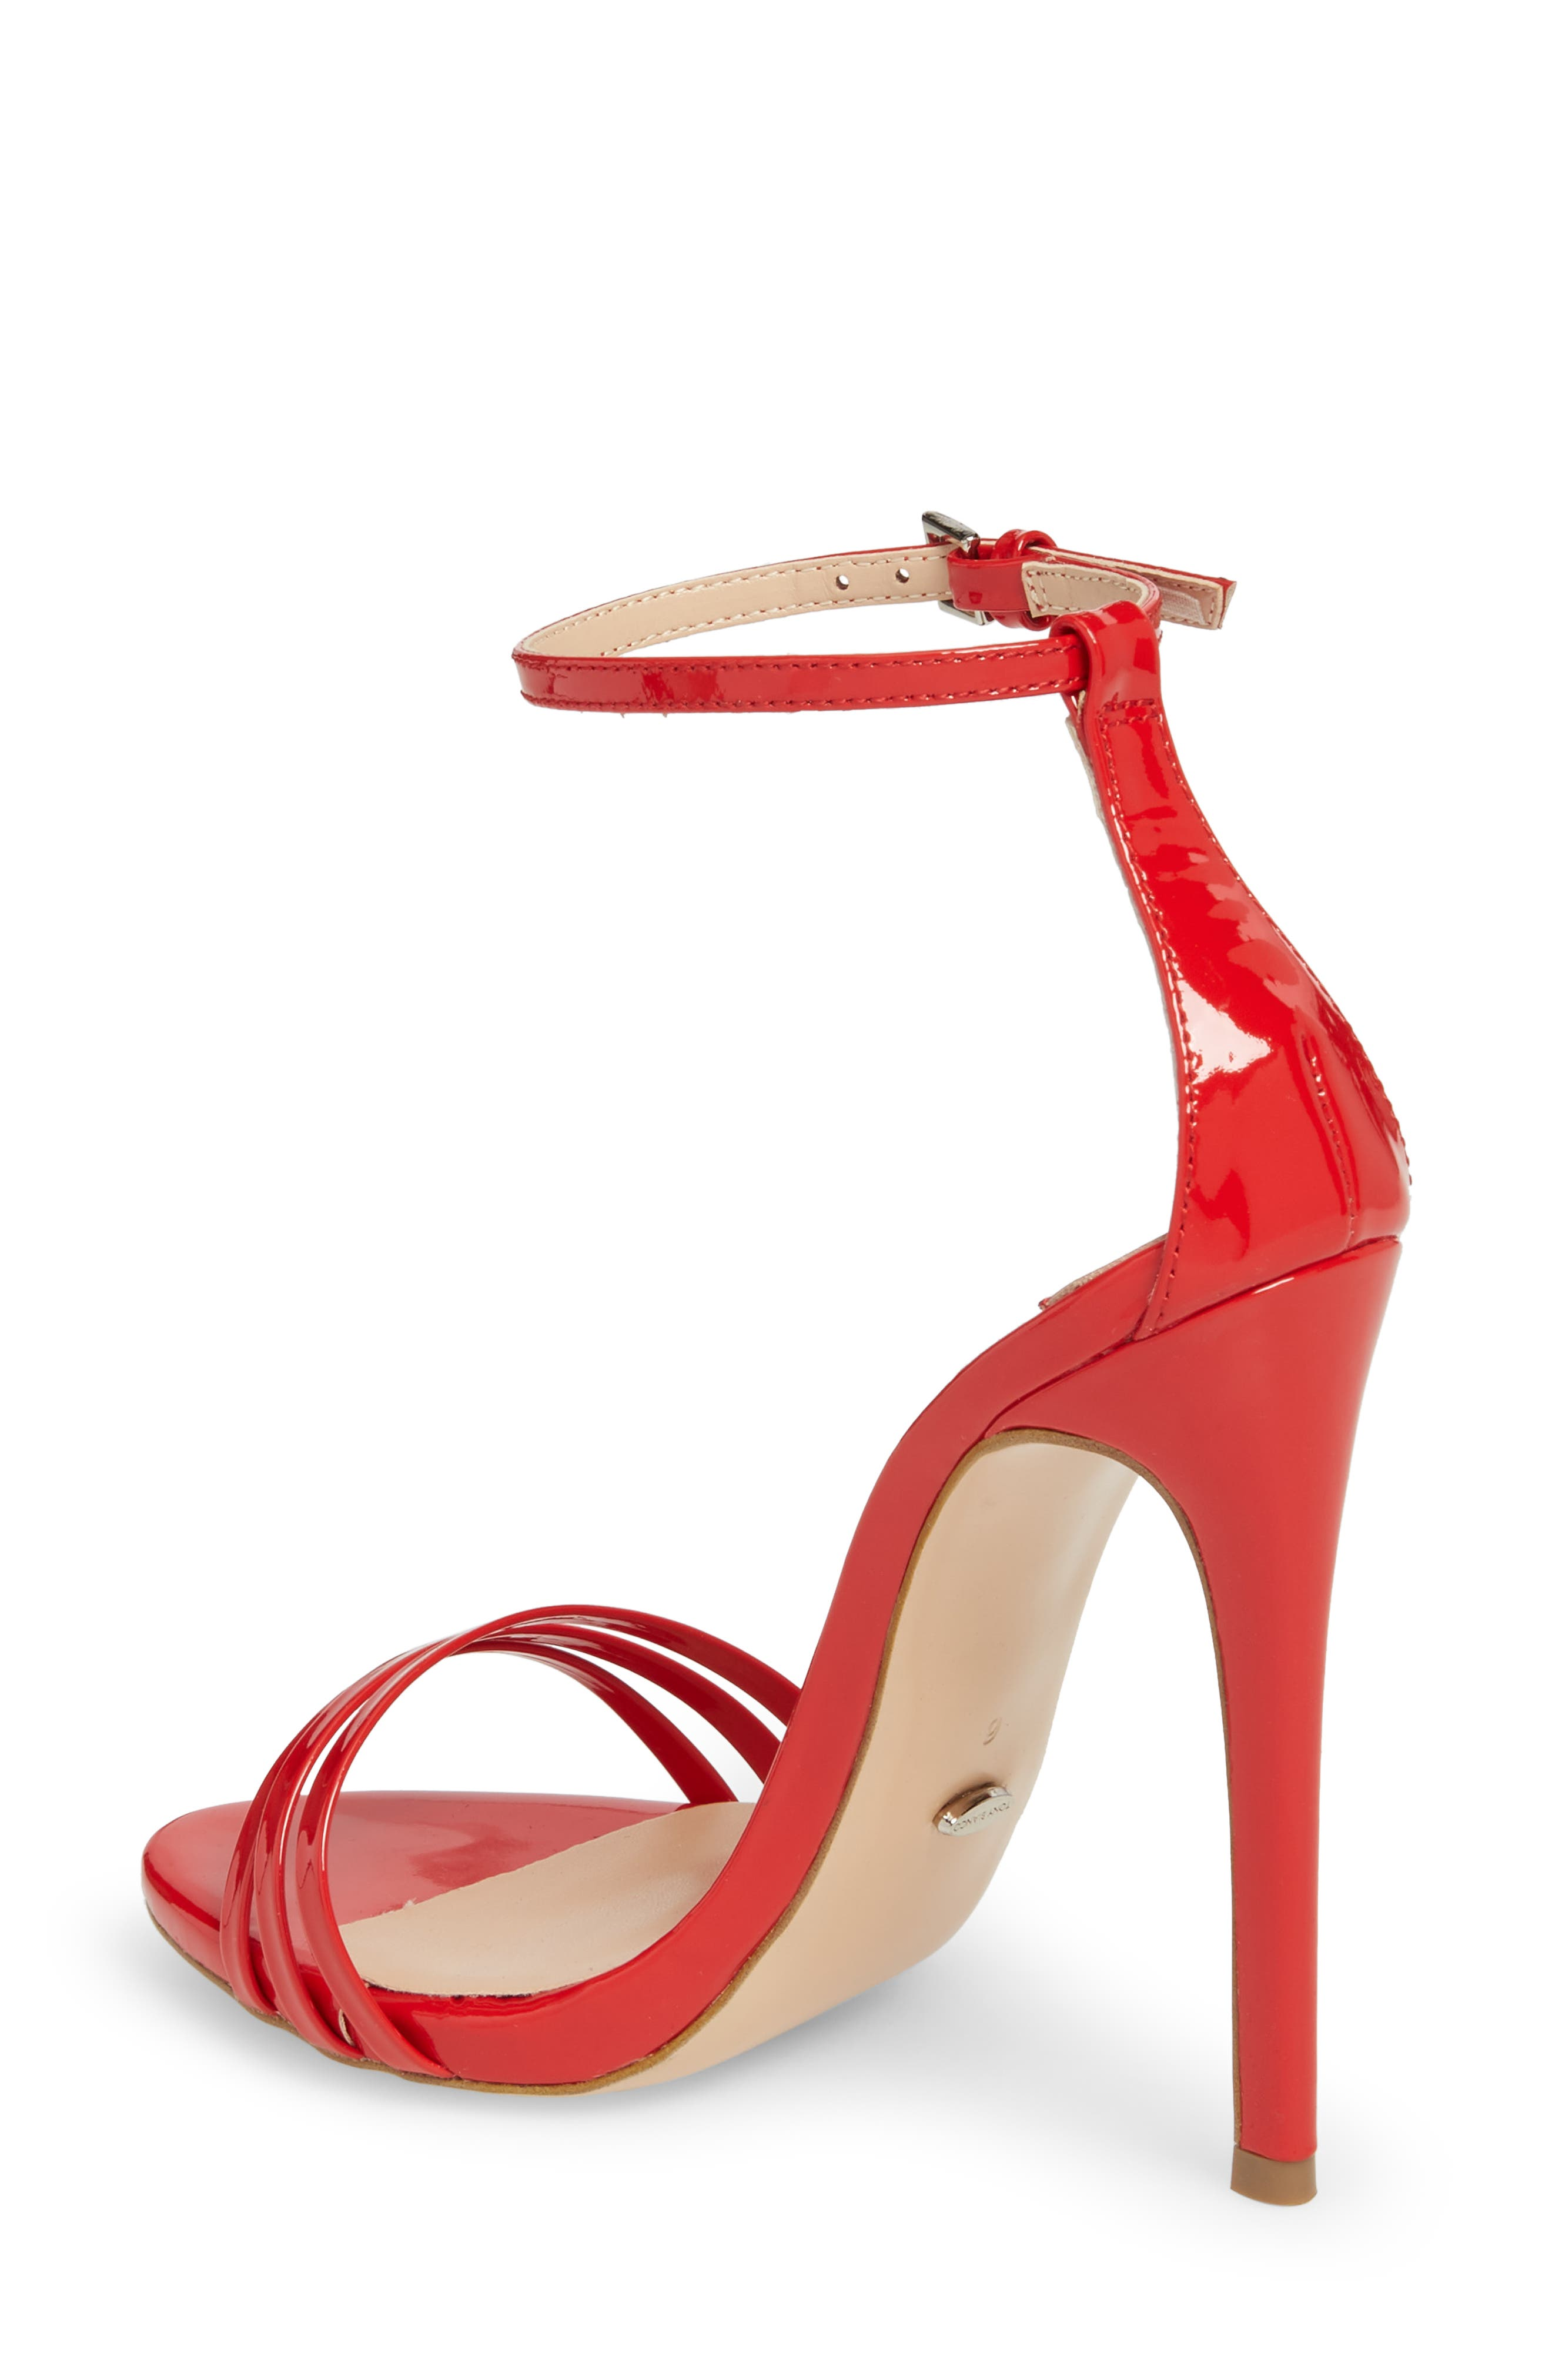 Aroma Strappy Sandal,                             Alternate thumbnail 2, color,                             Red Patent Leather